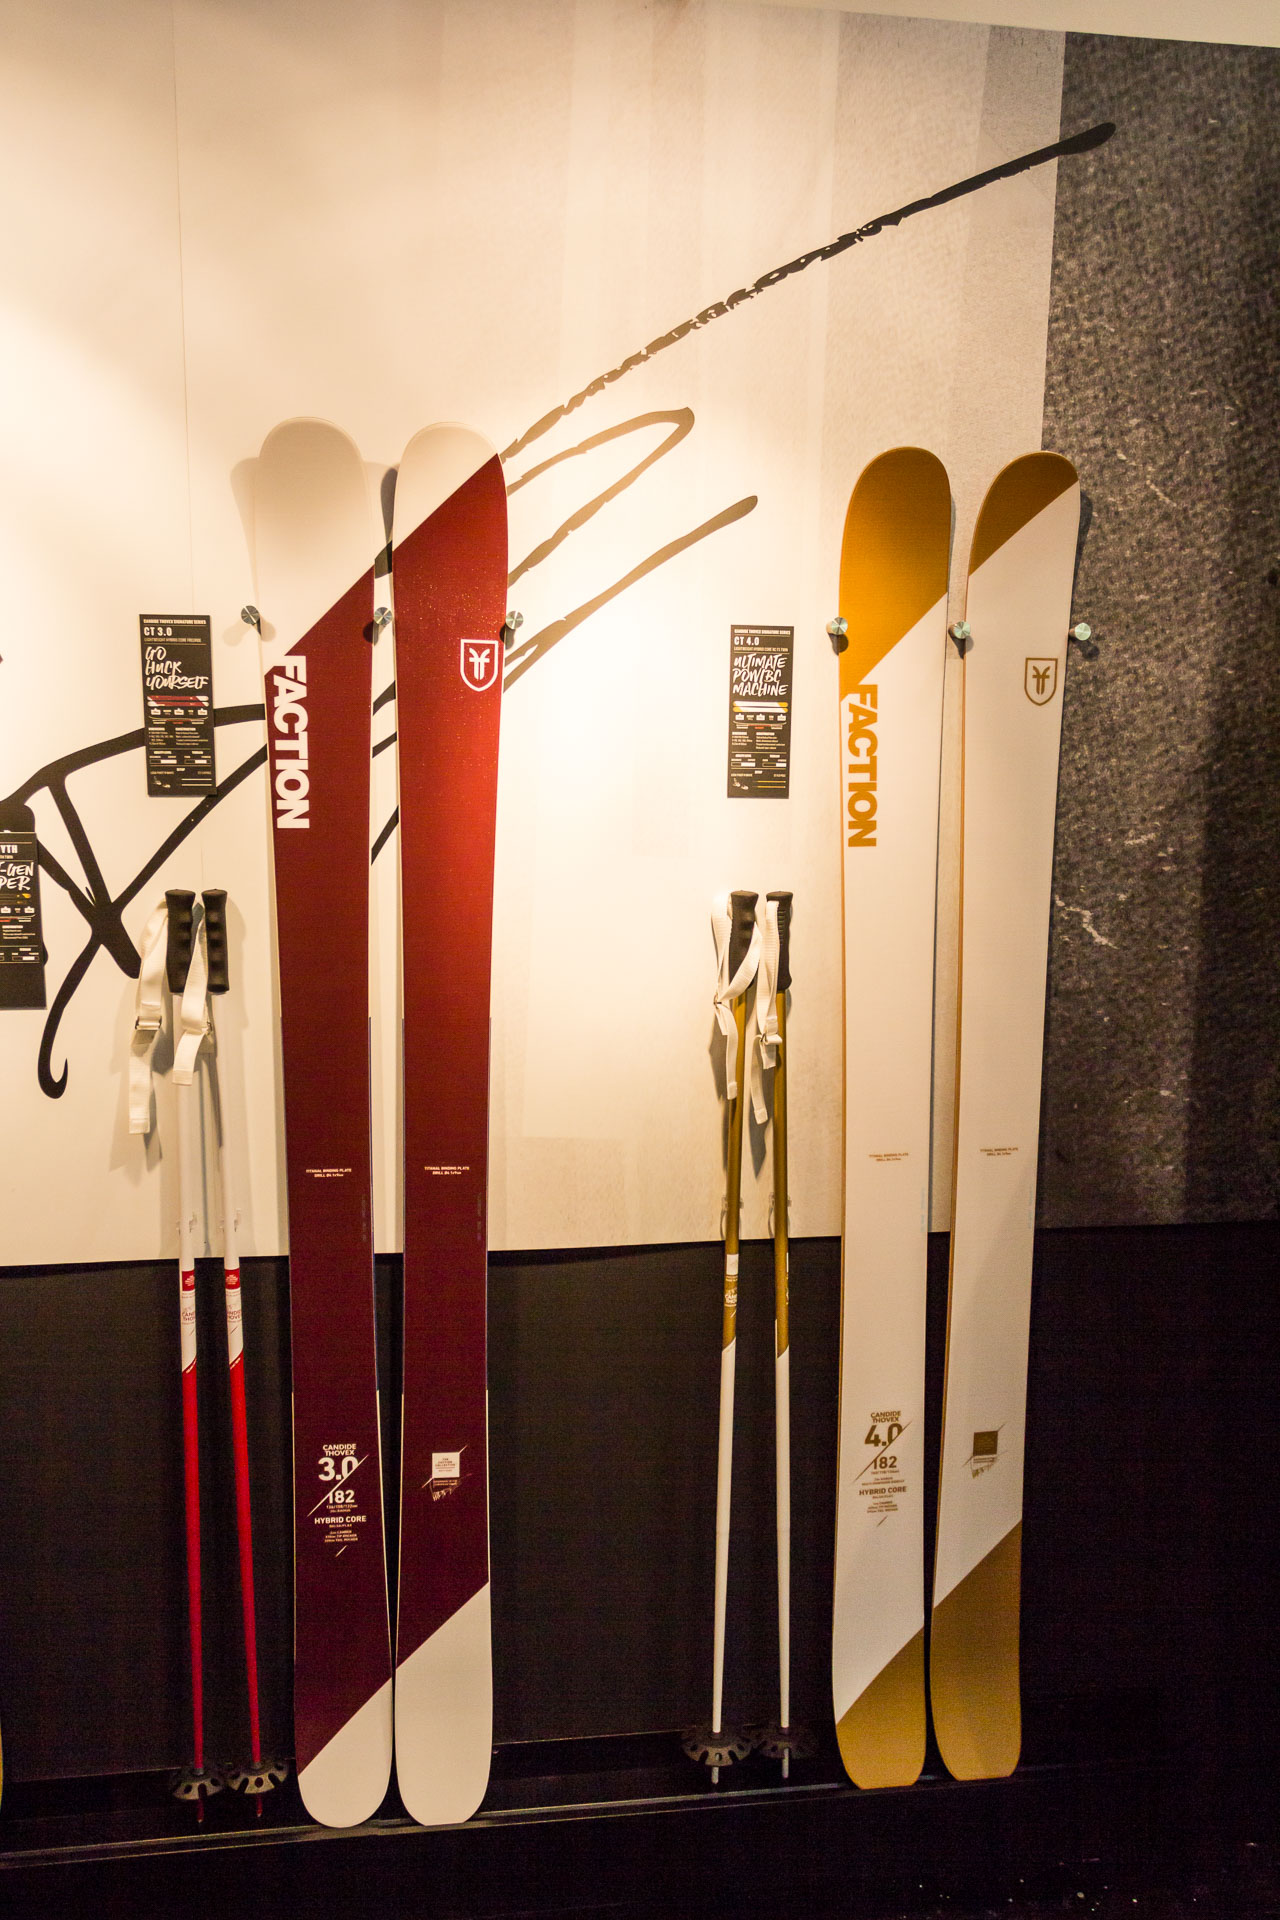 Faction Candide Thovex Signature Series: 3.0 und 4.0